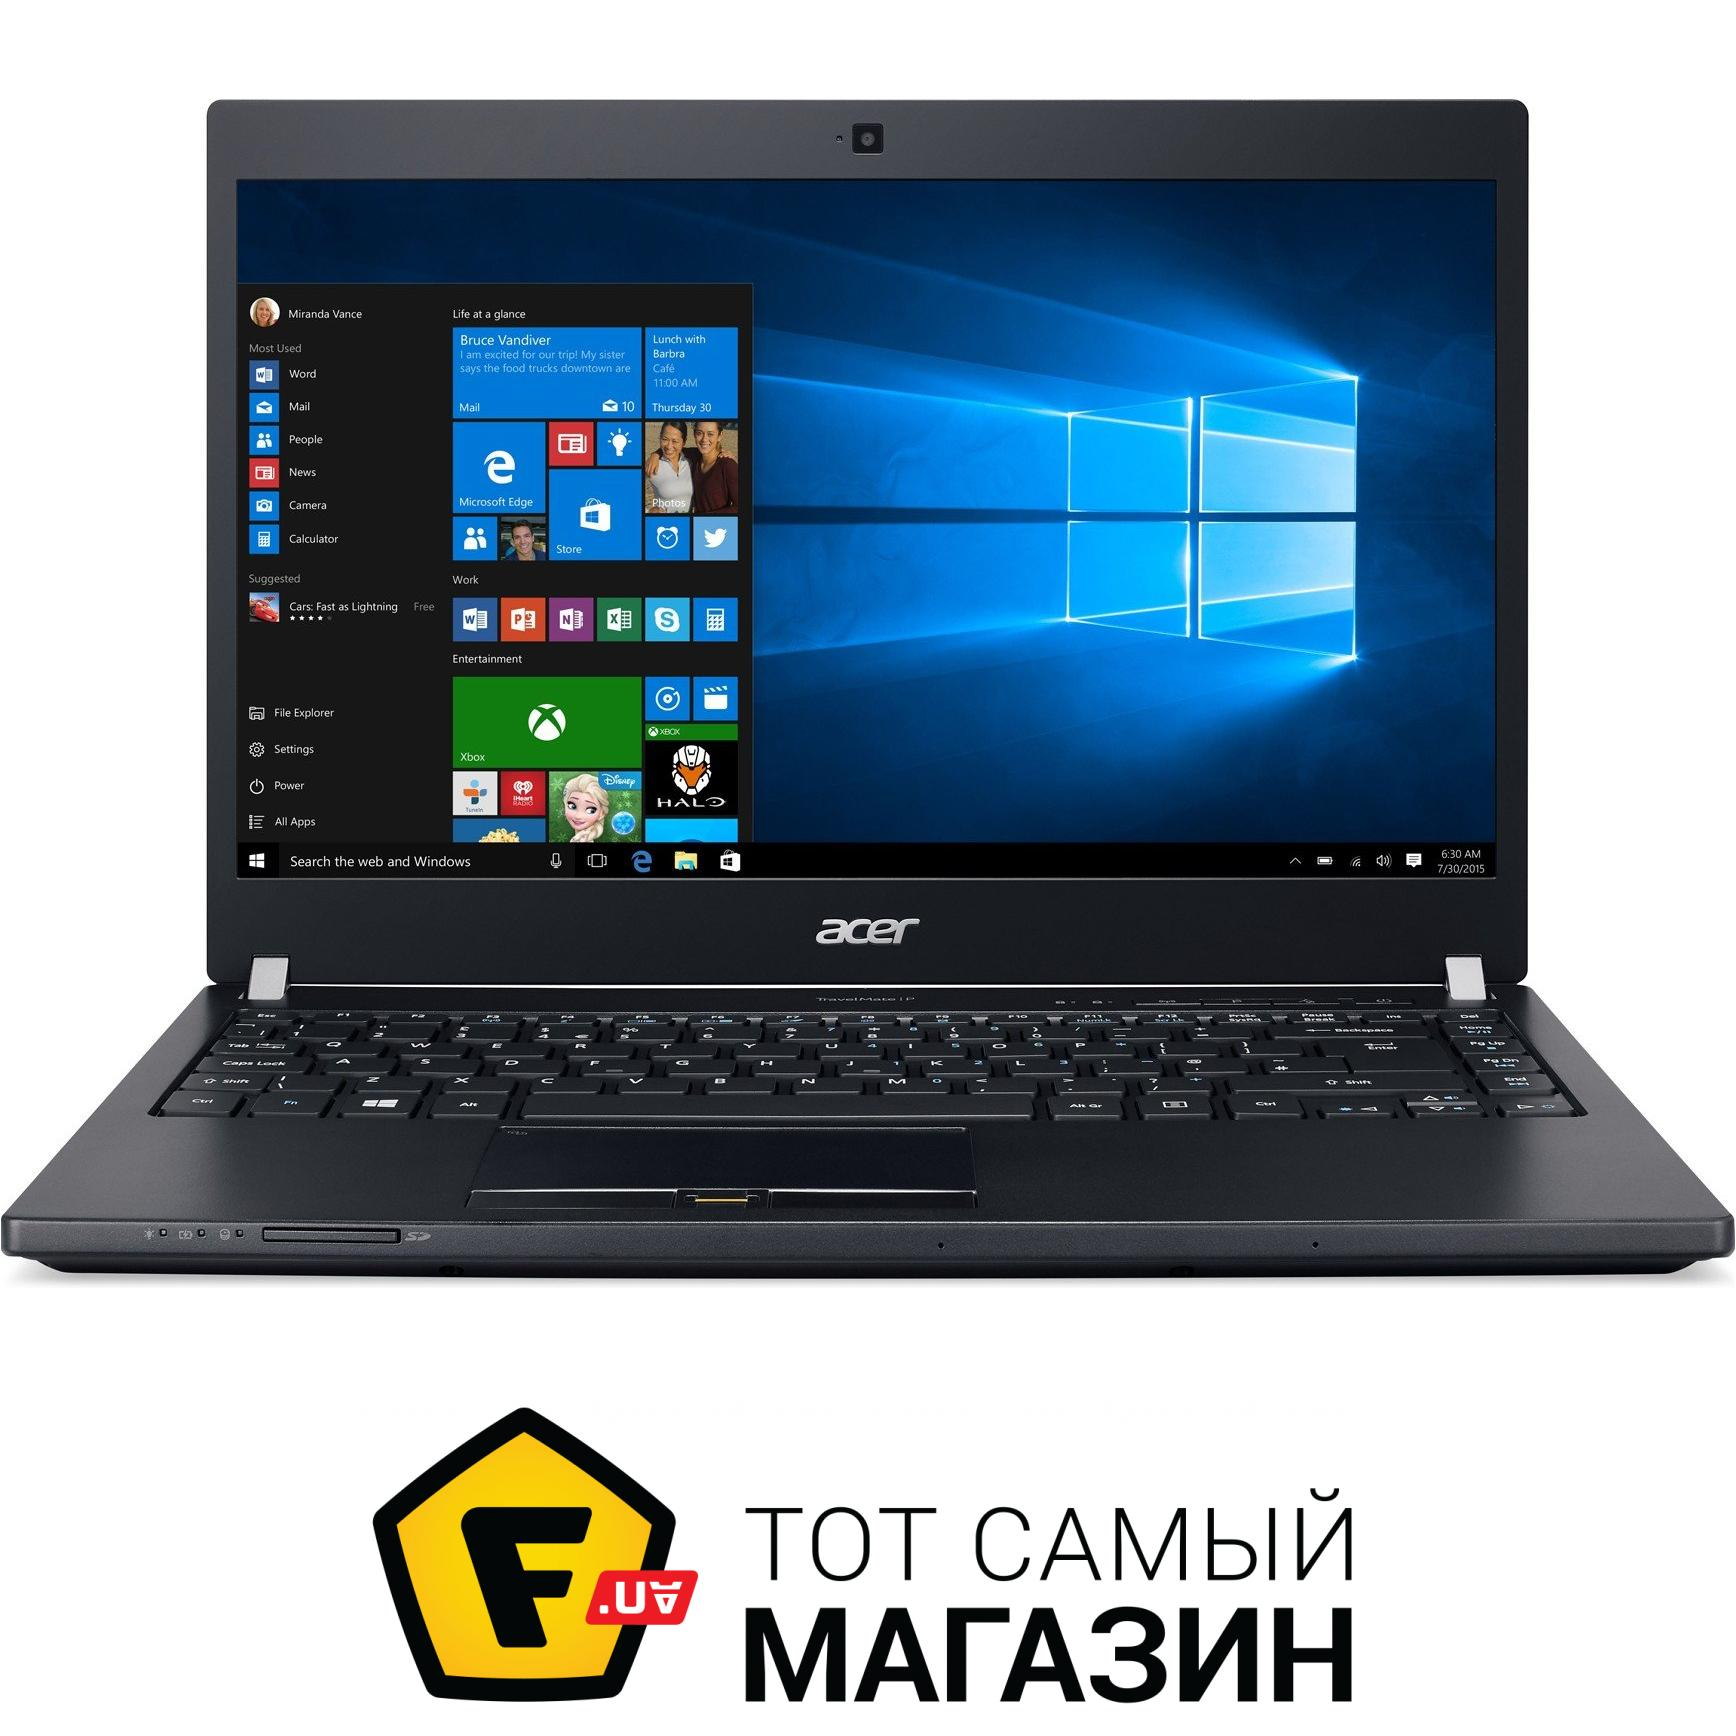 ACER TRAVELMATE 2400 BLUETOOTH DRIVERS FOR MAC